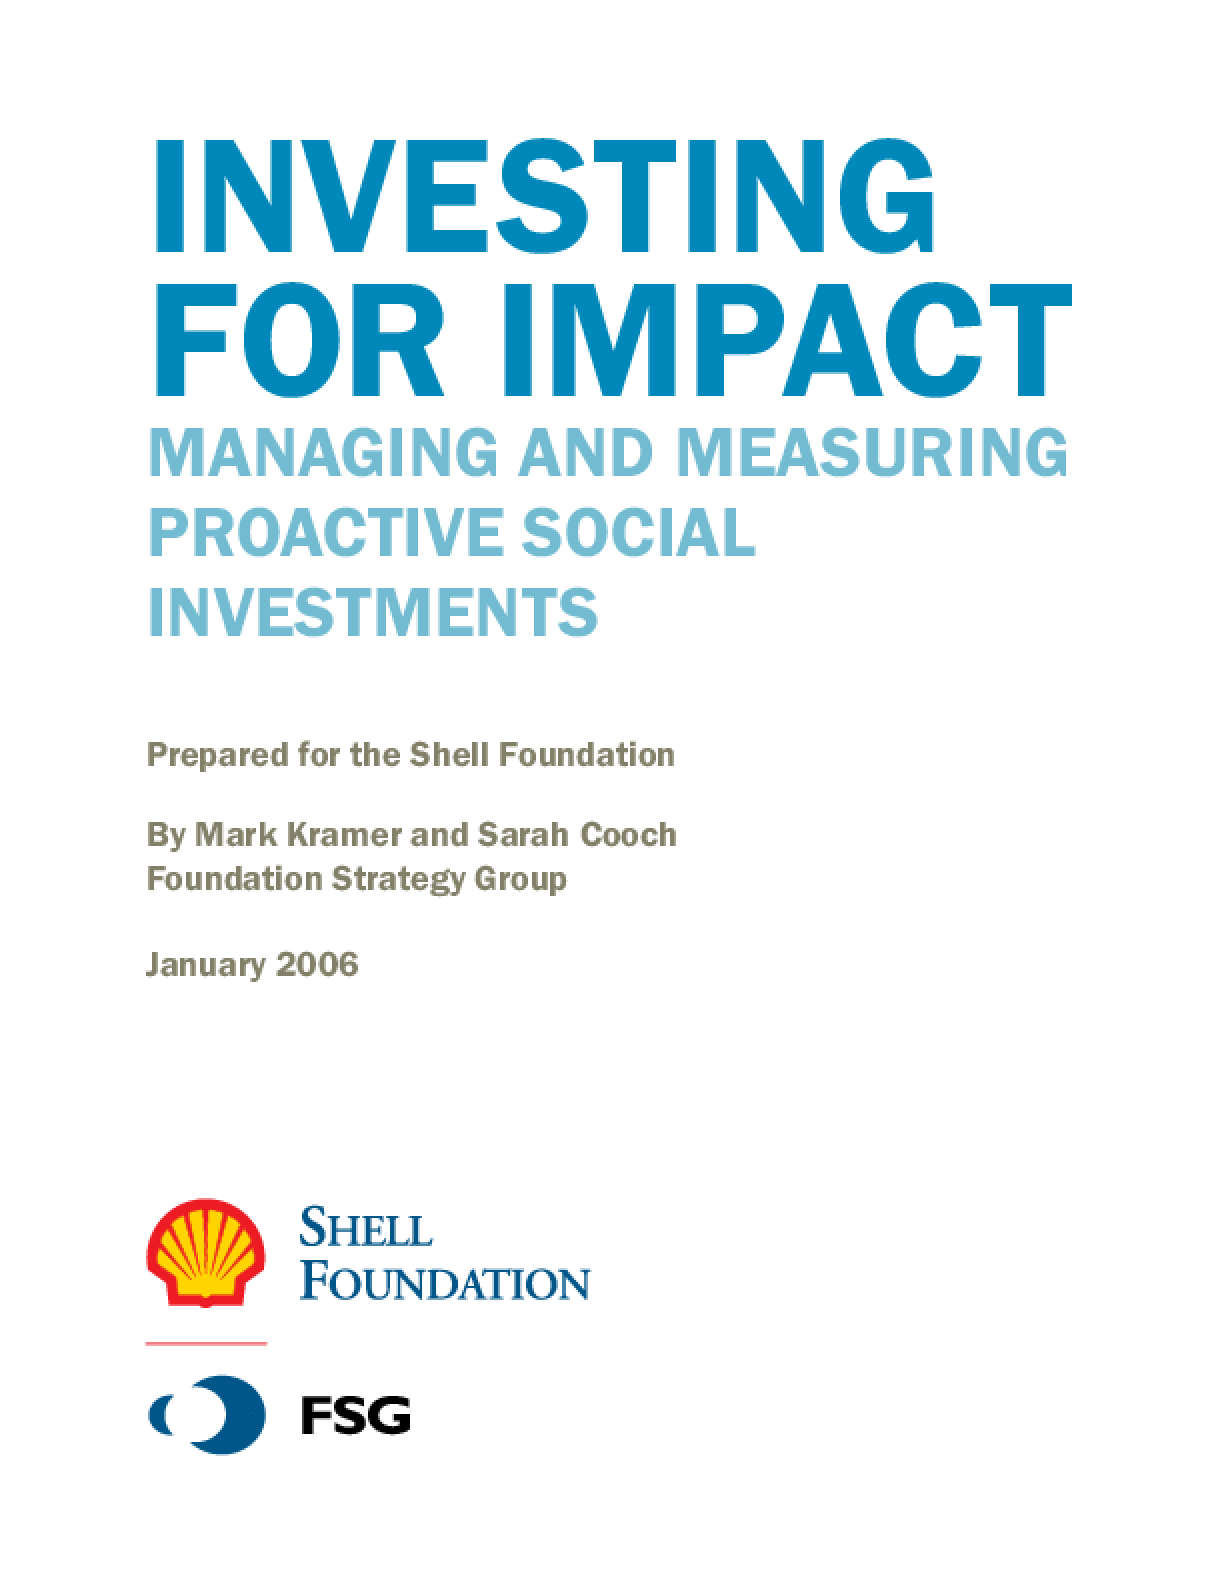 Investing for Impact - Managing and Measuring Proactive Social Investments